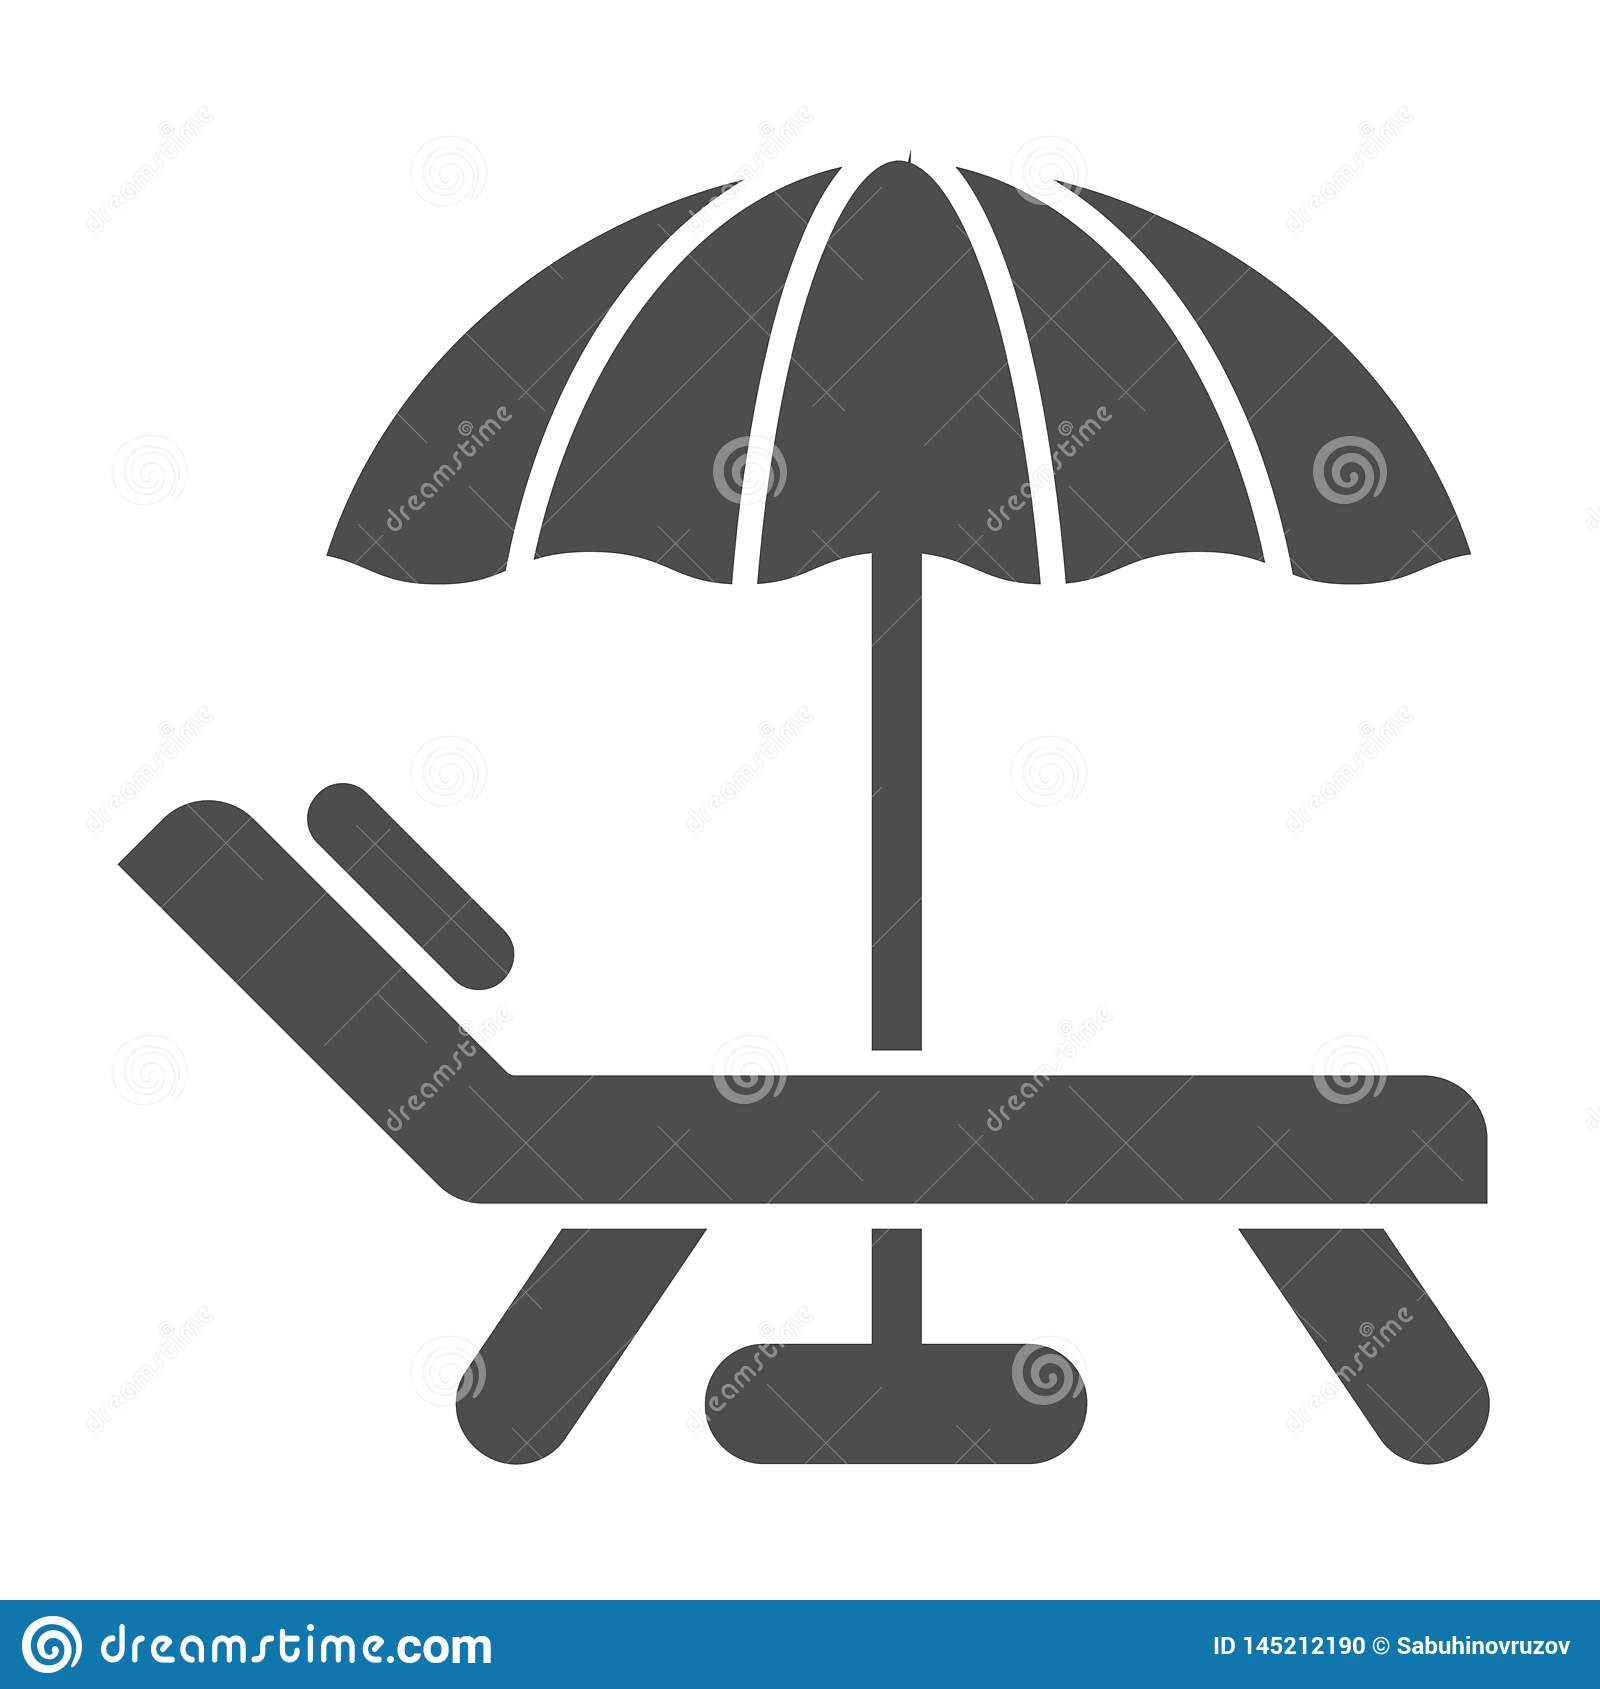 Beach umbrella and chair solid icon. Vacation vector illustration isolated on white. Travel glyph style design, designed